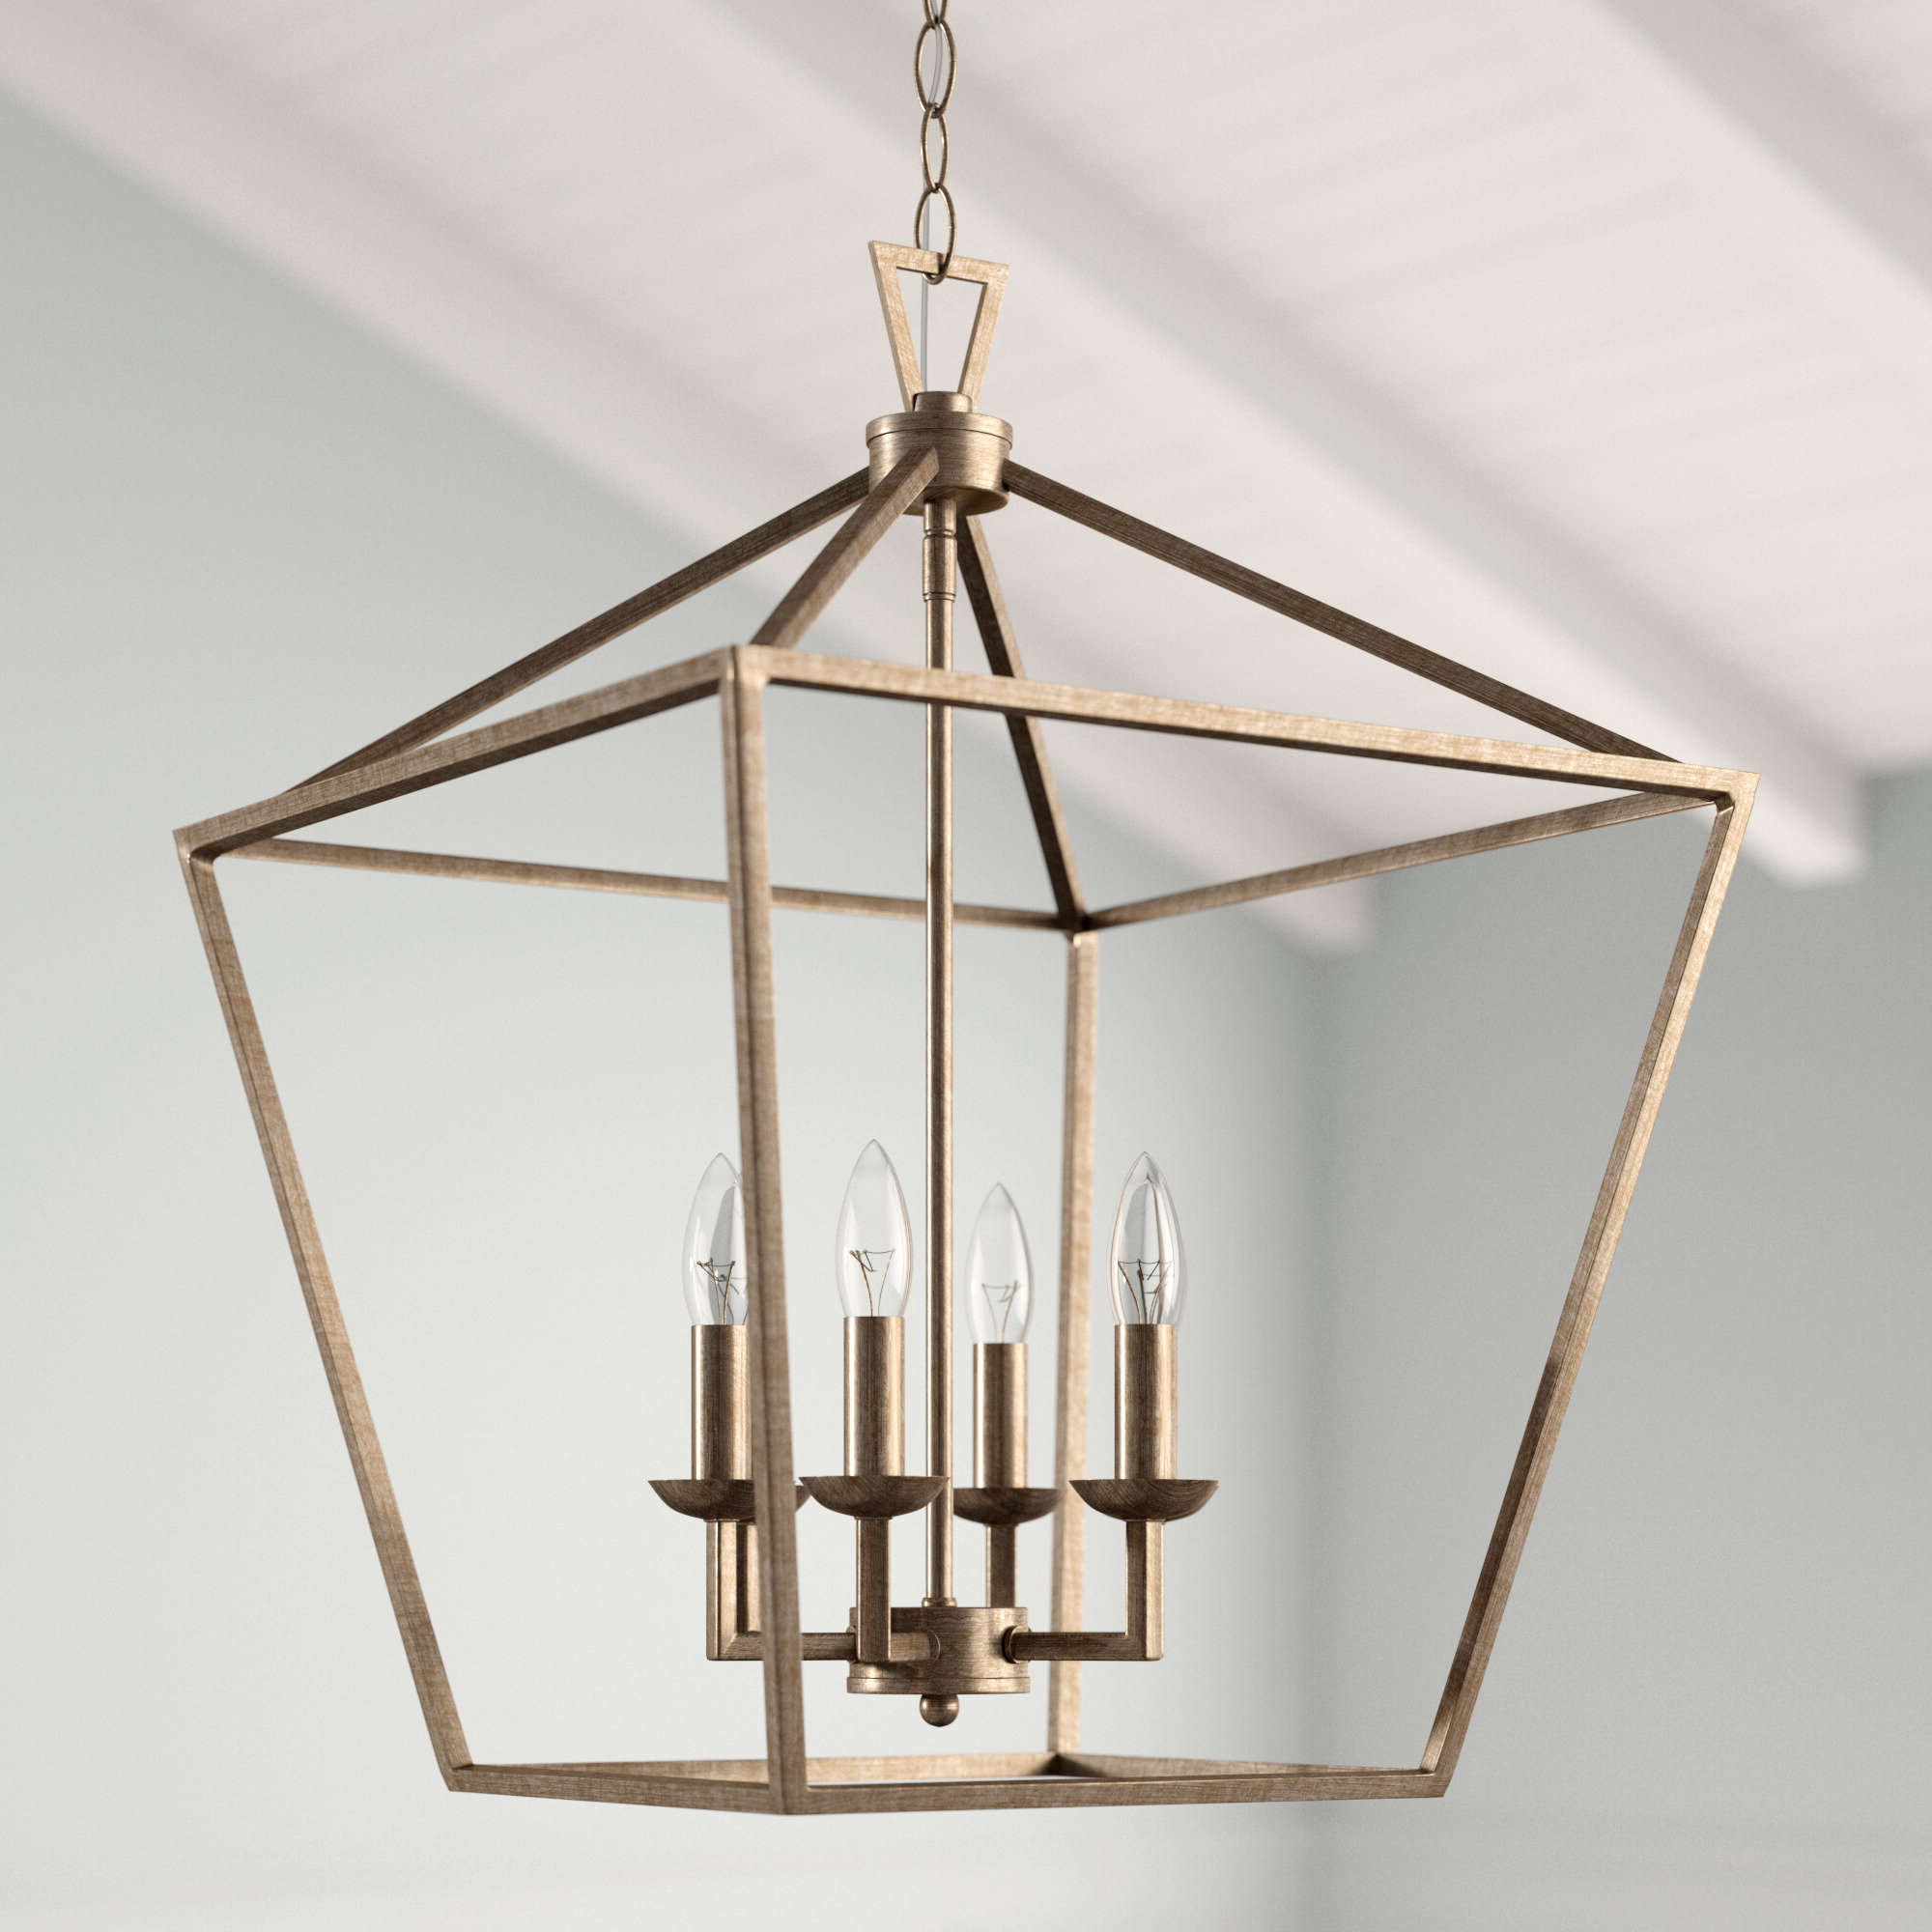 Preferred Louanne 1 Light Lantern Geometric Pendants In Carmen 6 Light Lantern Geometric Pendant (View 11 of 25)